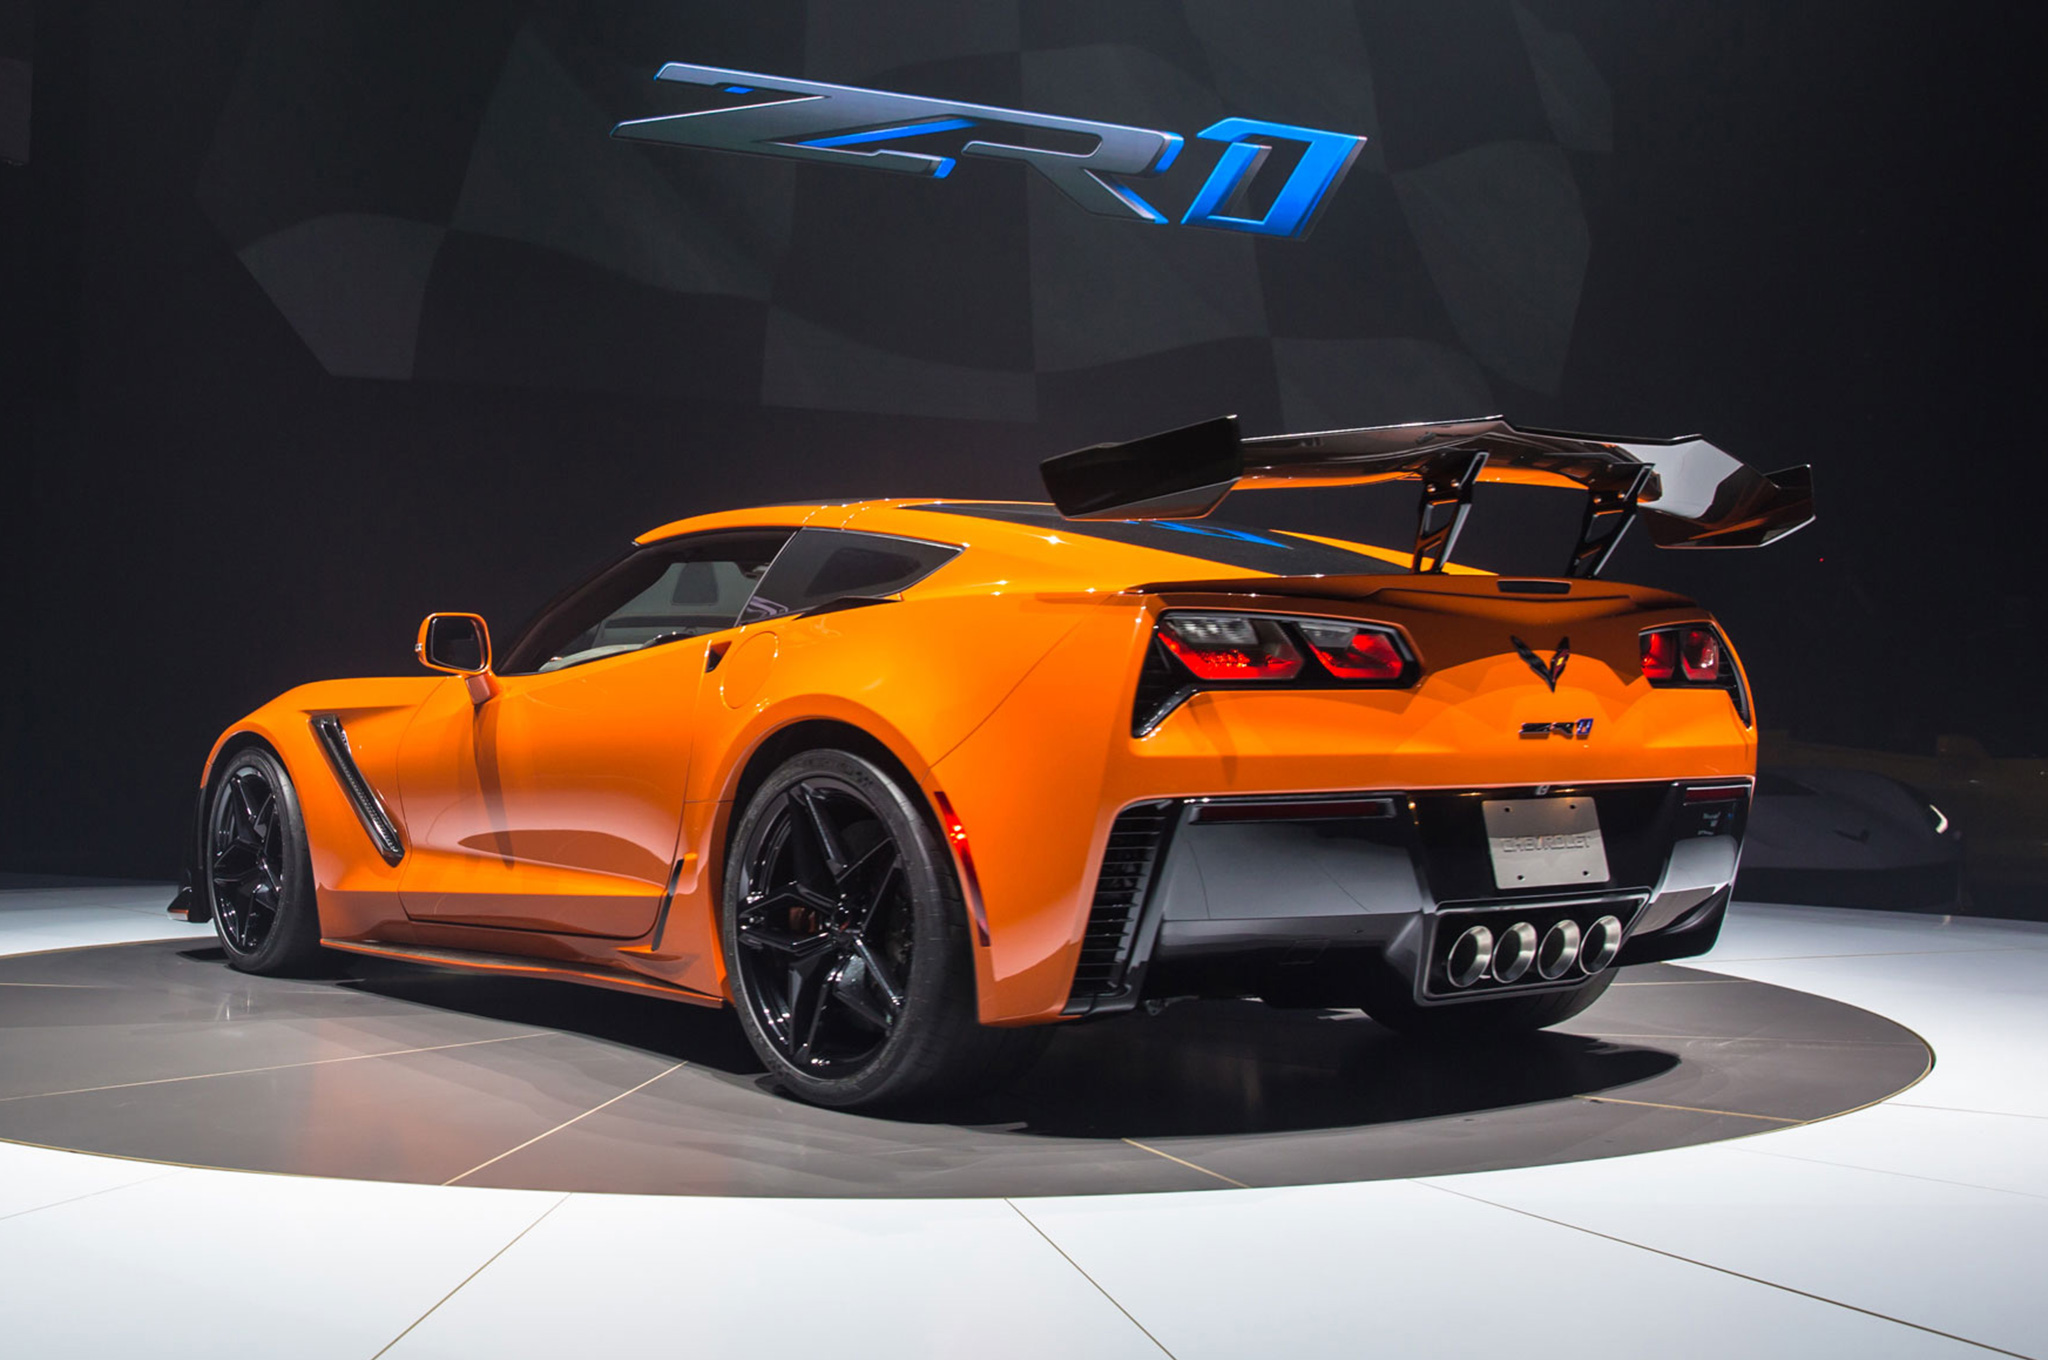 2019 Corvette ZR1 Will Melt Your Face f At 210 MPH – ZeroPointNow